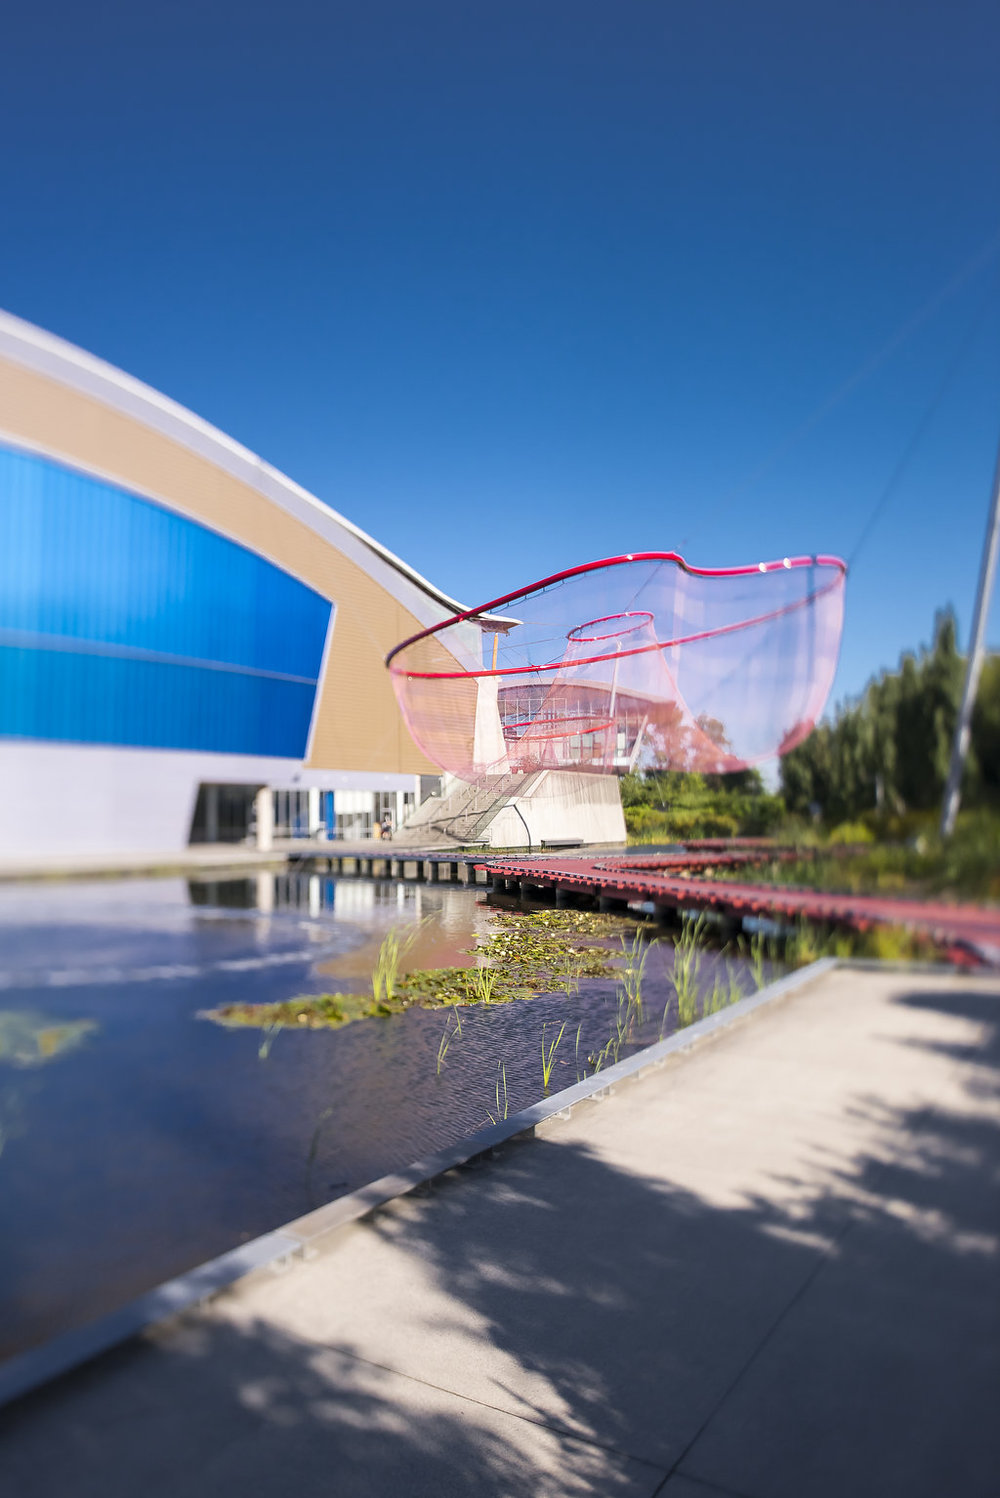 BRS-Richmond-Olympic-Oval-PFS-Studio-Richmond-Landscape-Architectural-Photography-River-Green-Brett-Ryan-Studios-16-08-23-006